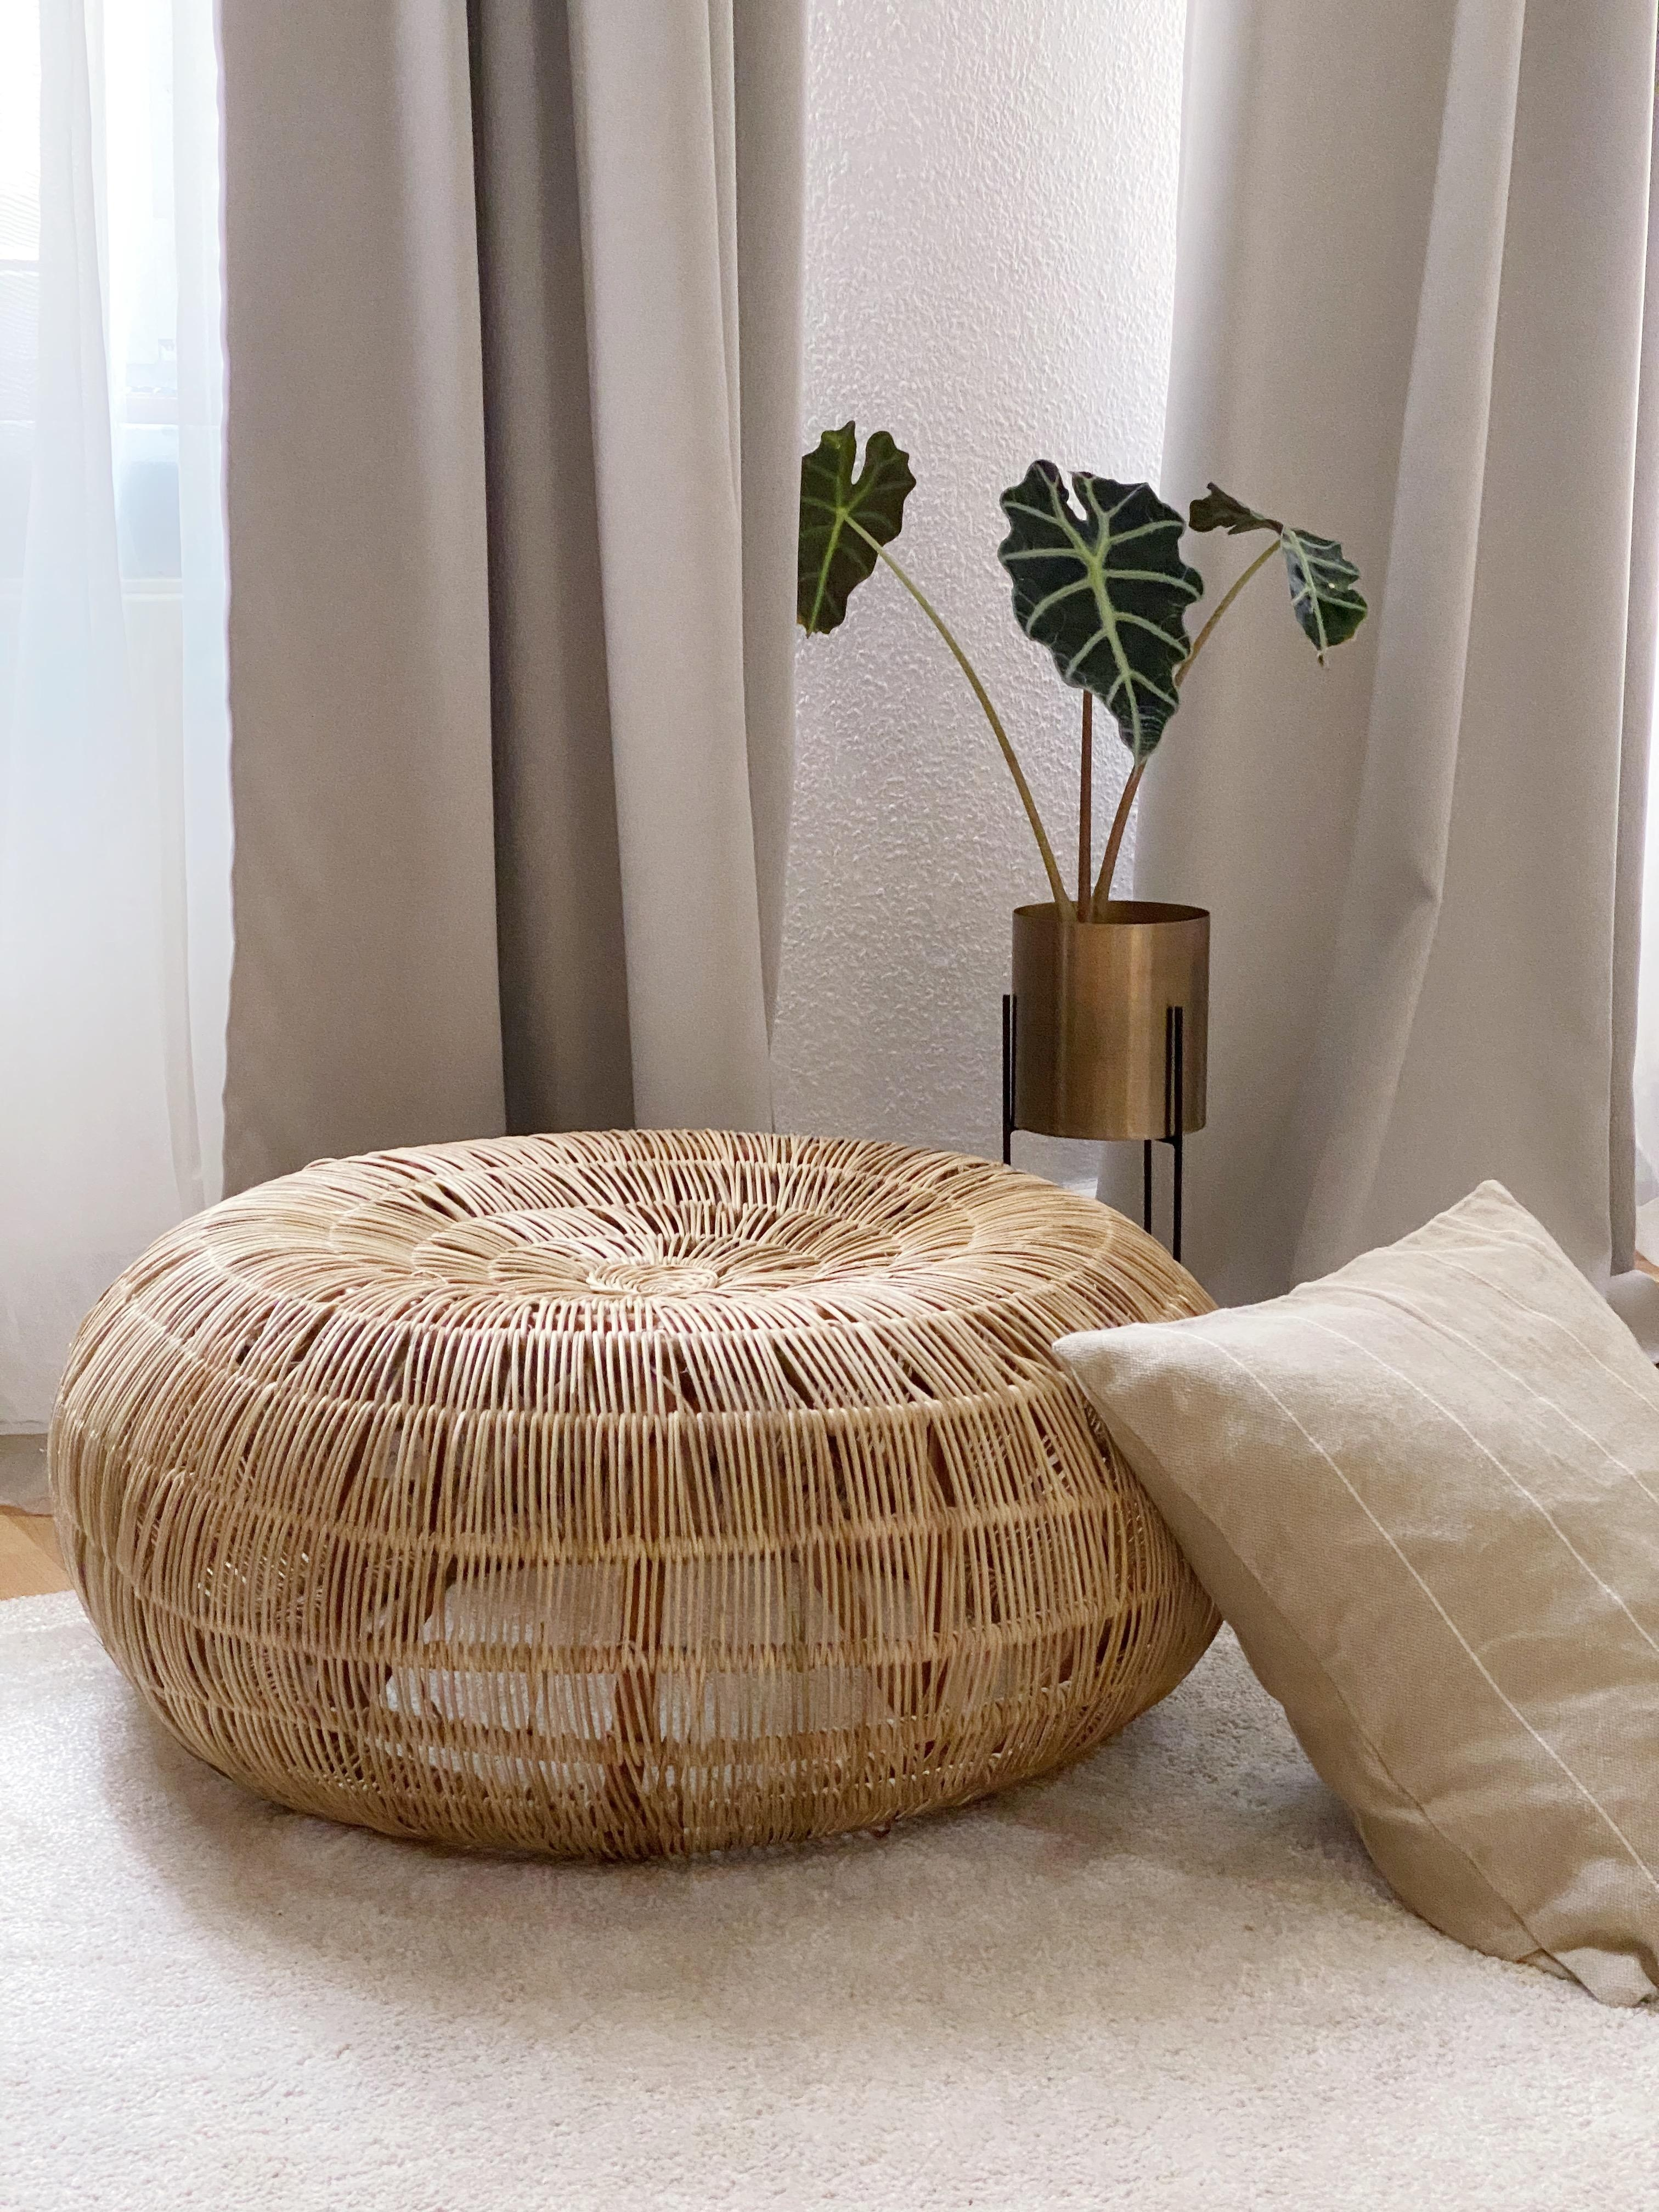 New in for some summer feeling. #zarahome #ikea #naturalinterior #rattan #summer